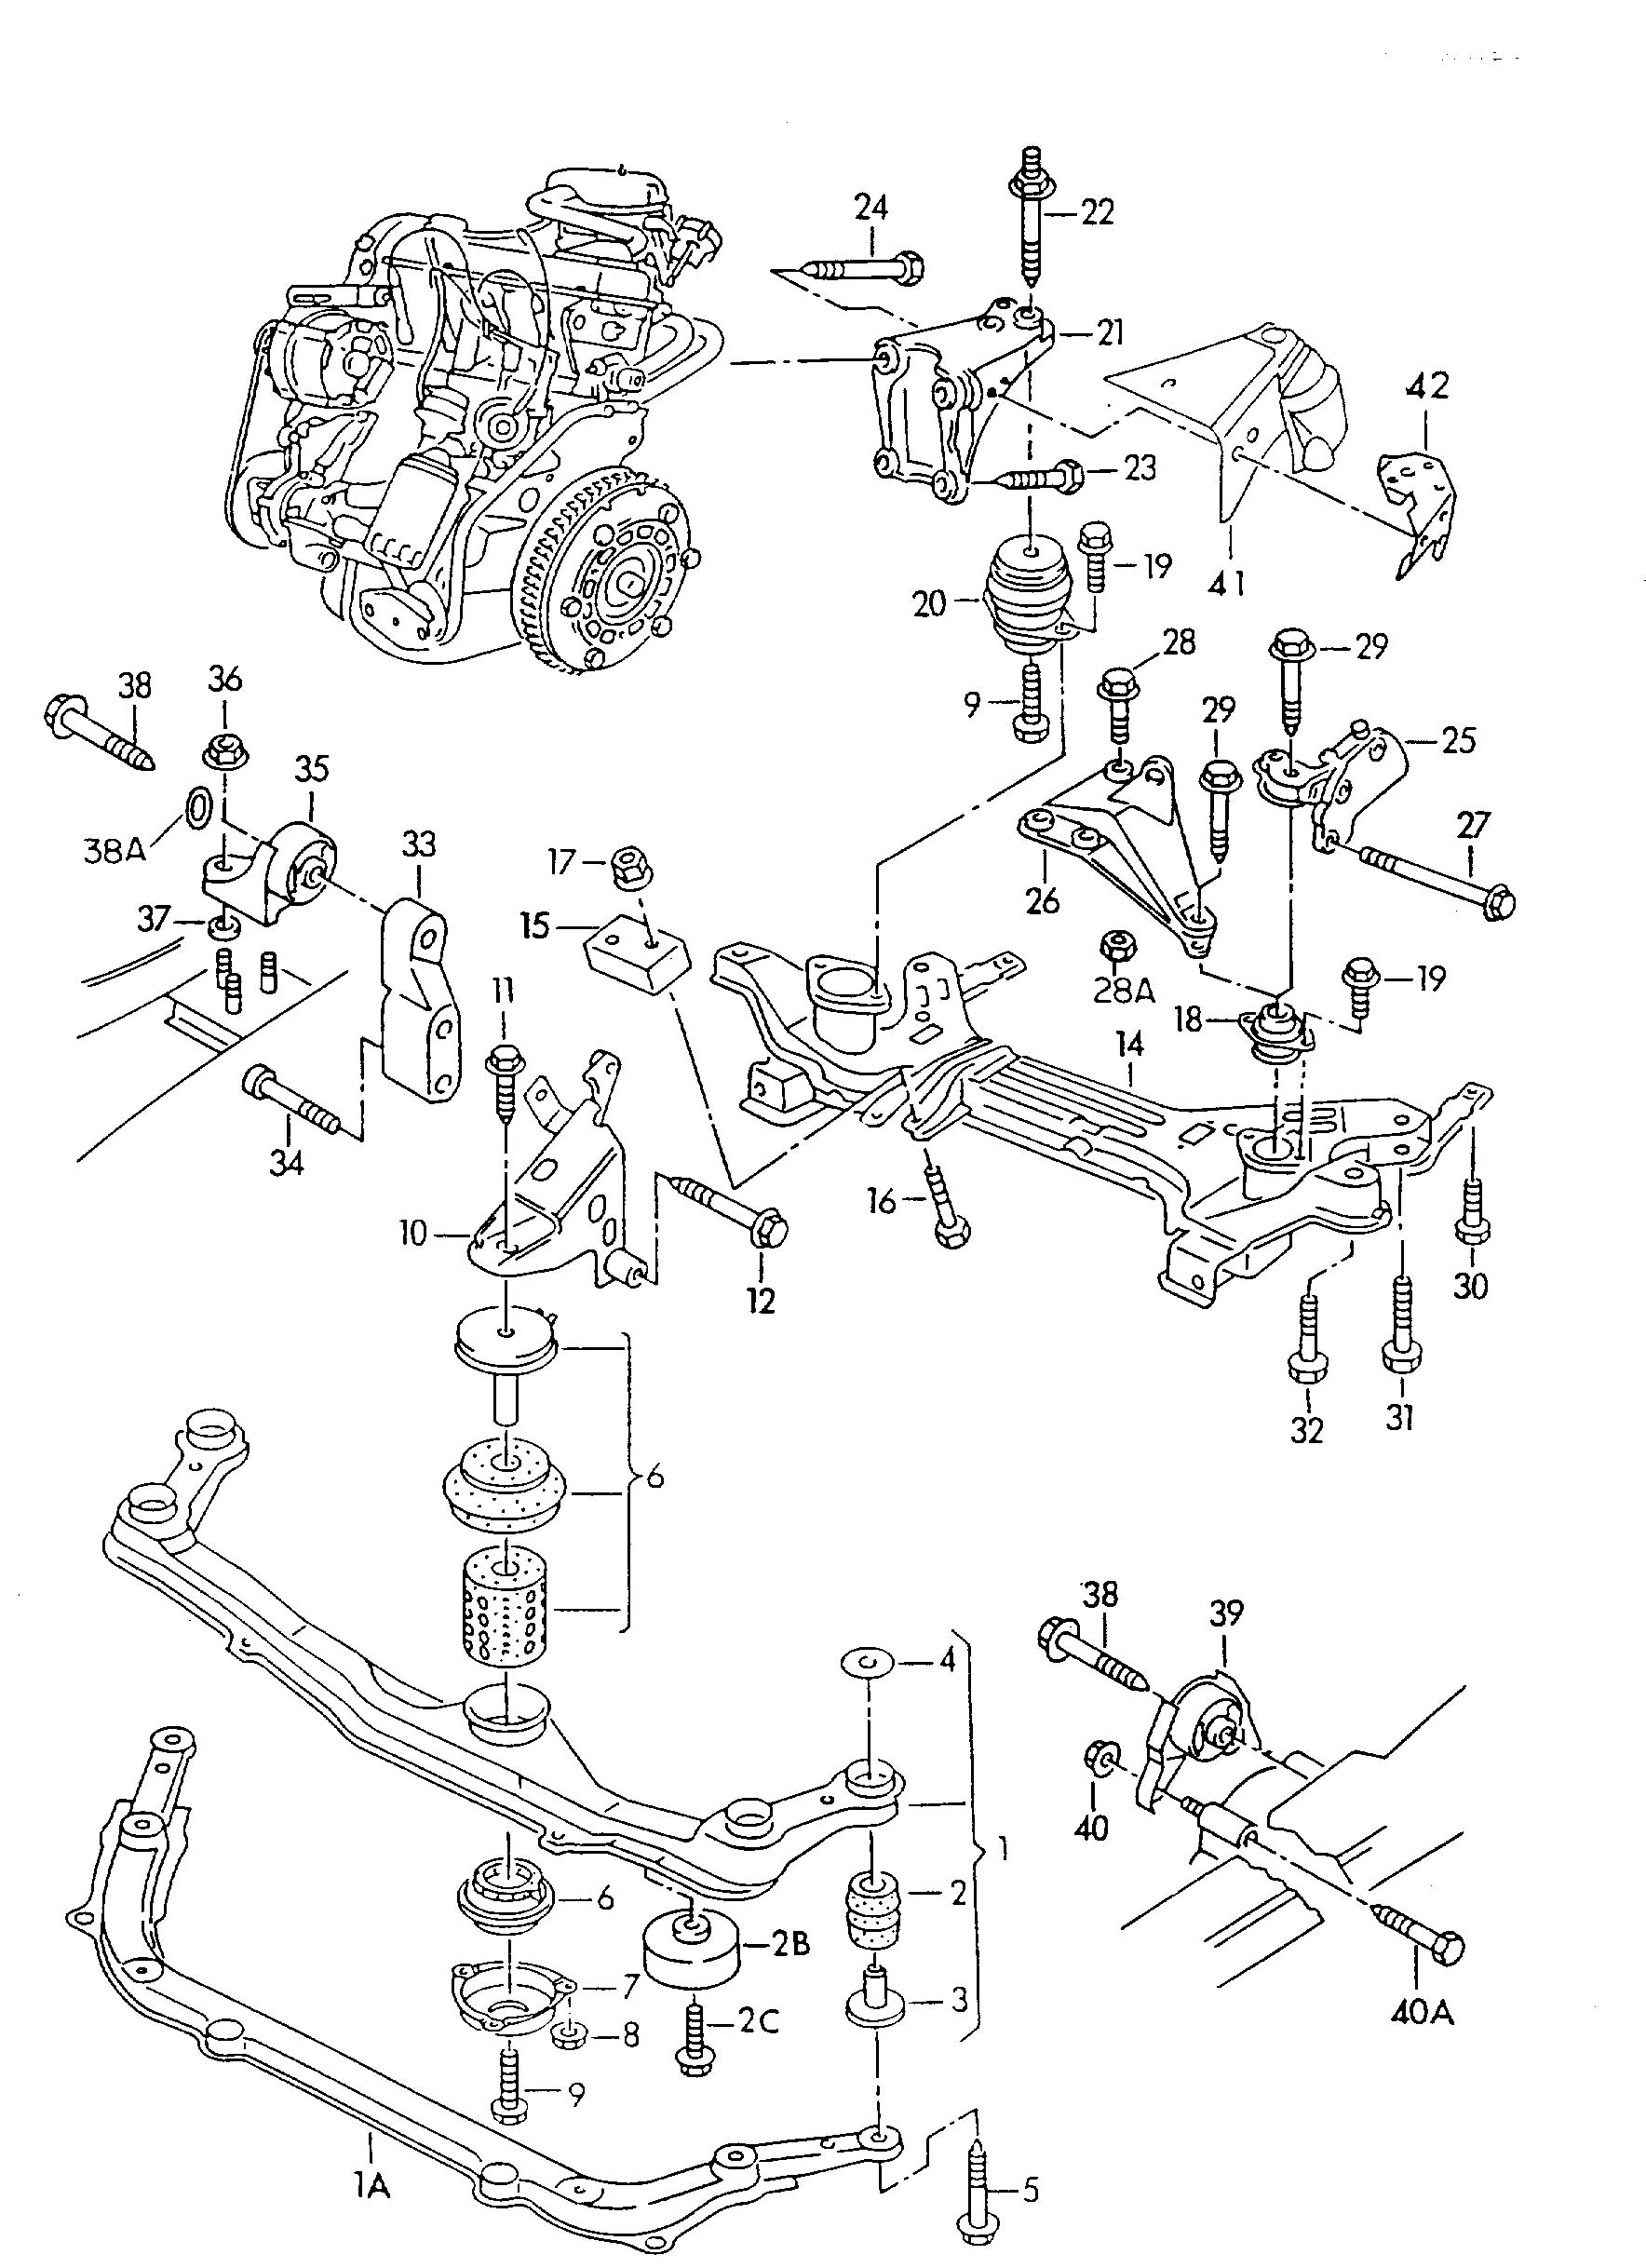 Wiring Diagram Jetta Engine Diagram